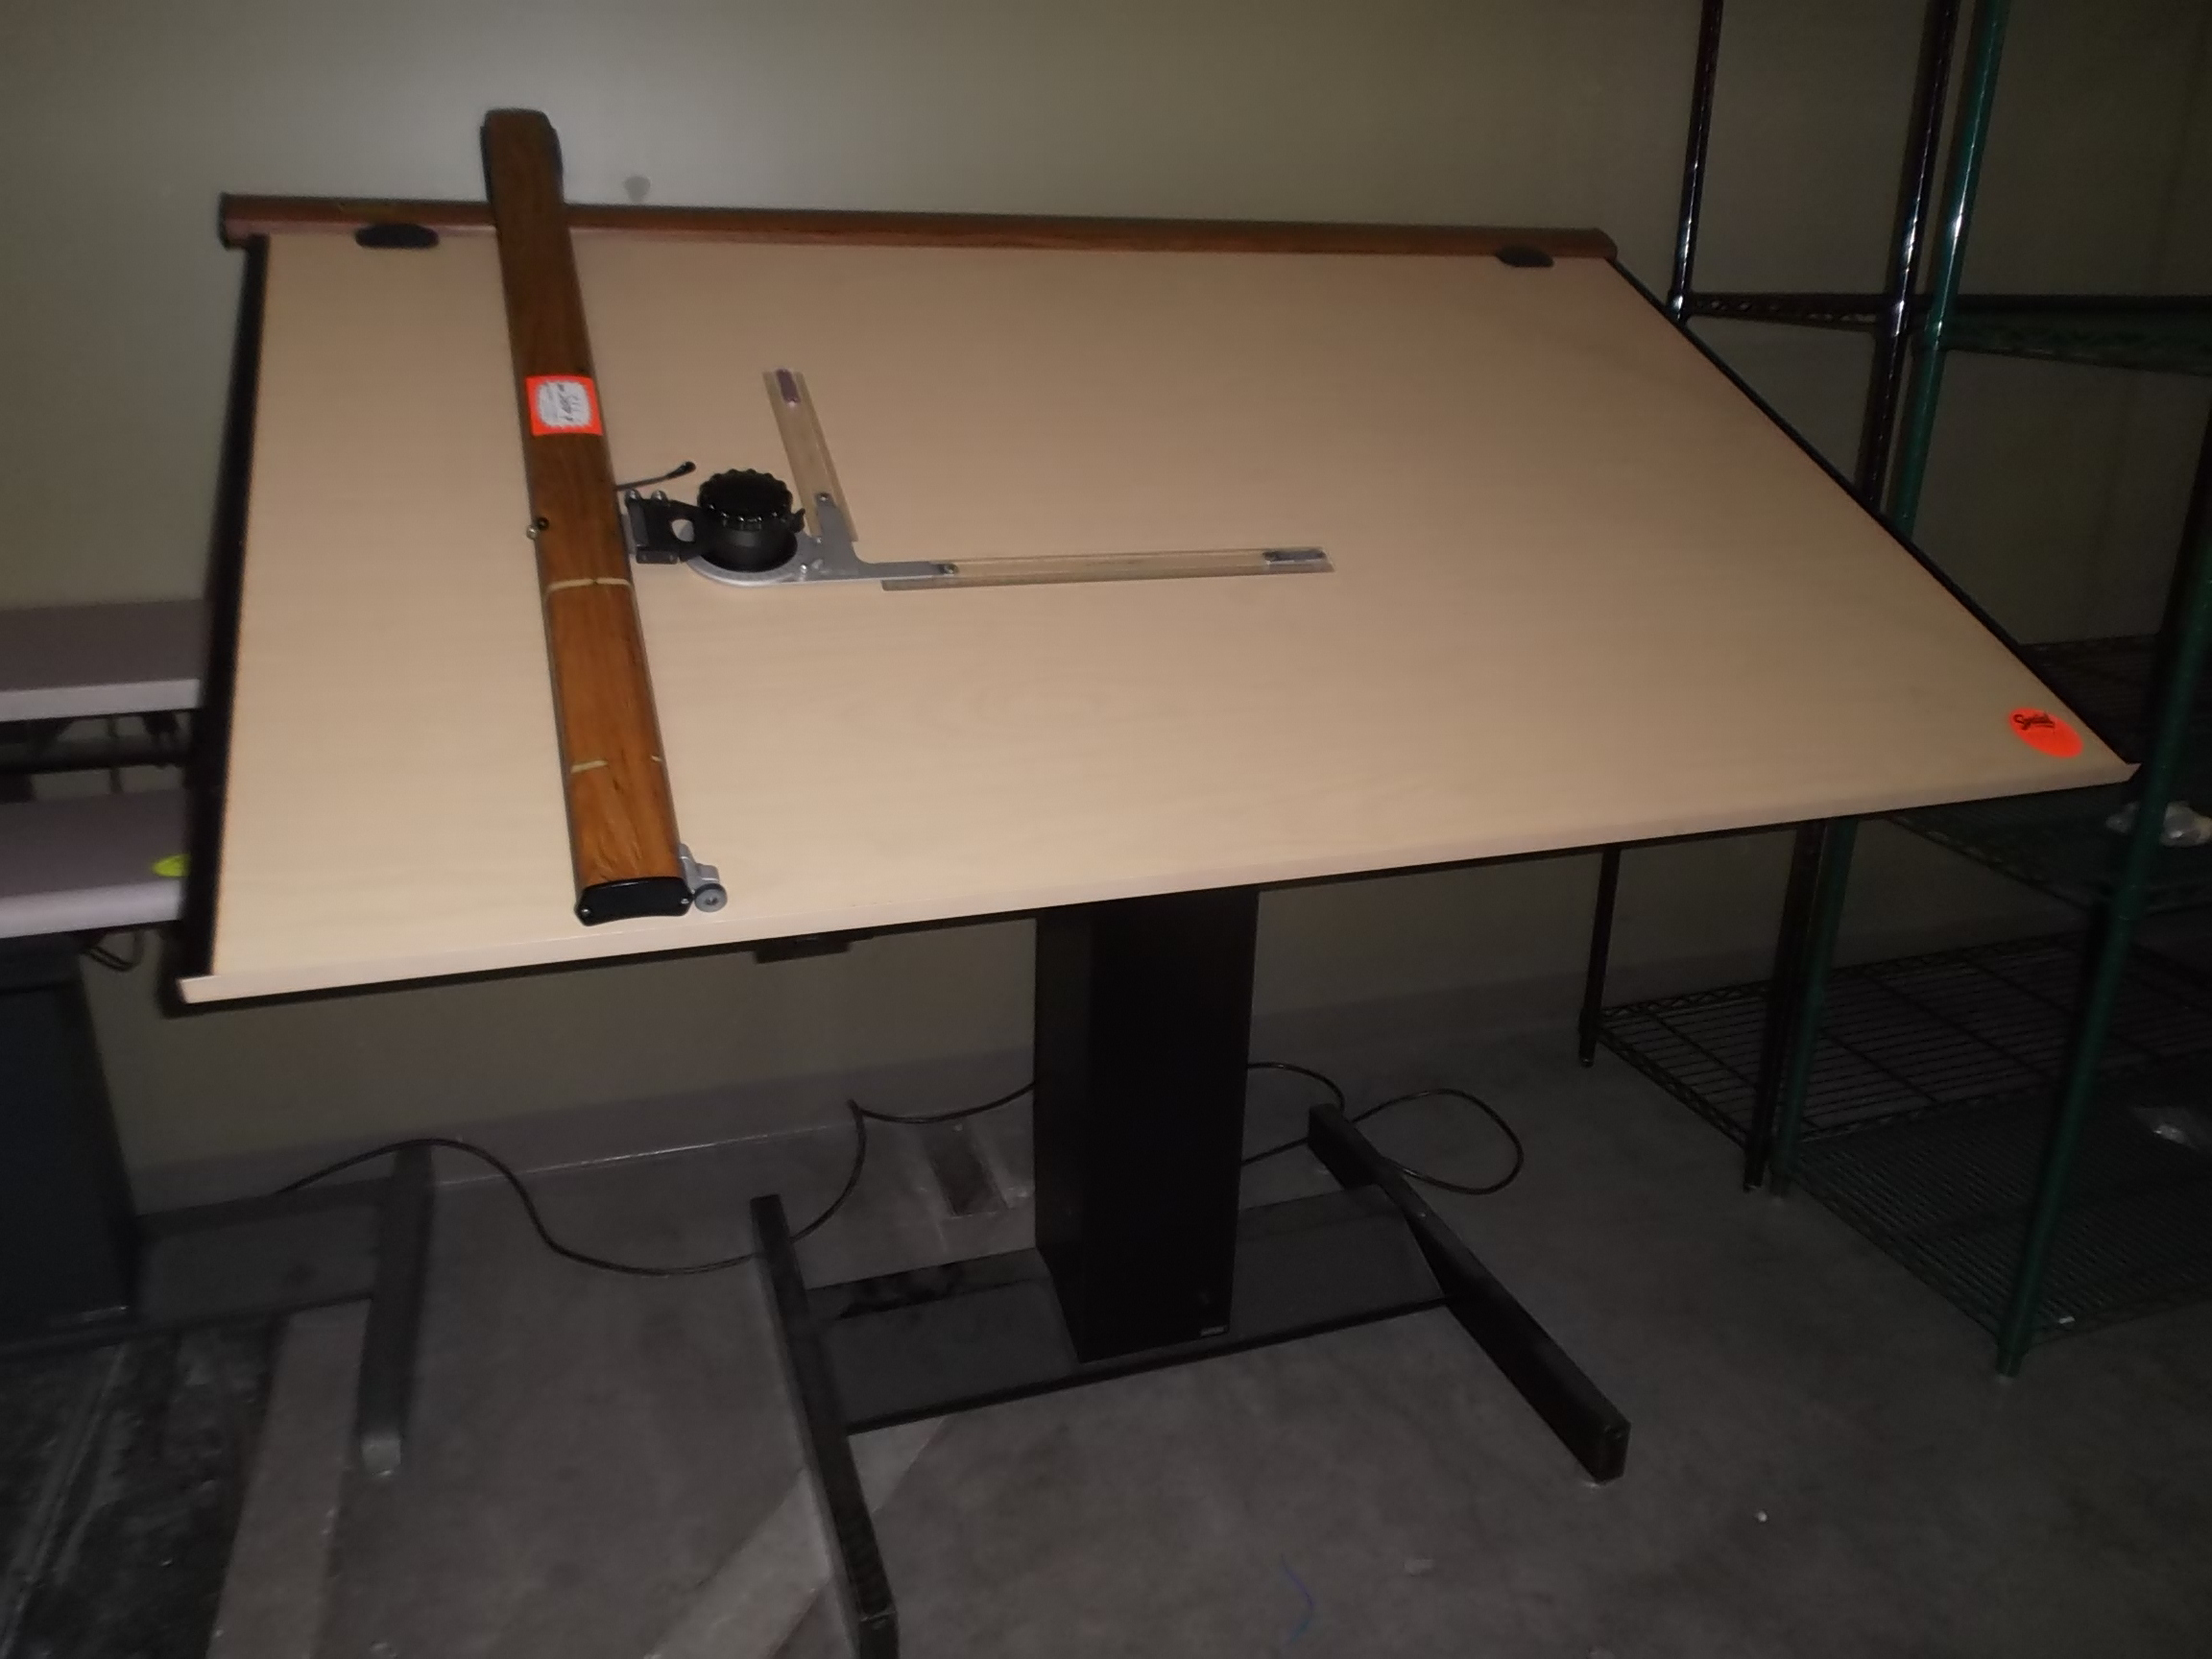 Drafting table dimensions - This Mayline Electric Height Adjustable Drafting Table Sells New For Over 3500 00 The Top Size Is 37 5 X 72 With A Manual Tilt Adjustment